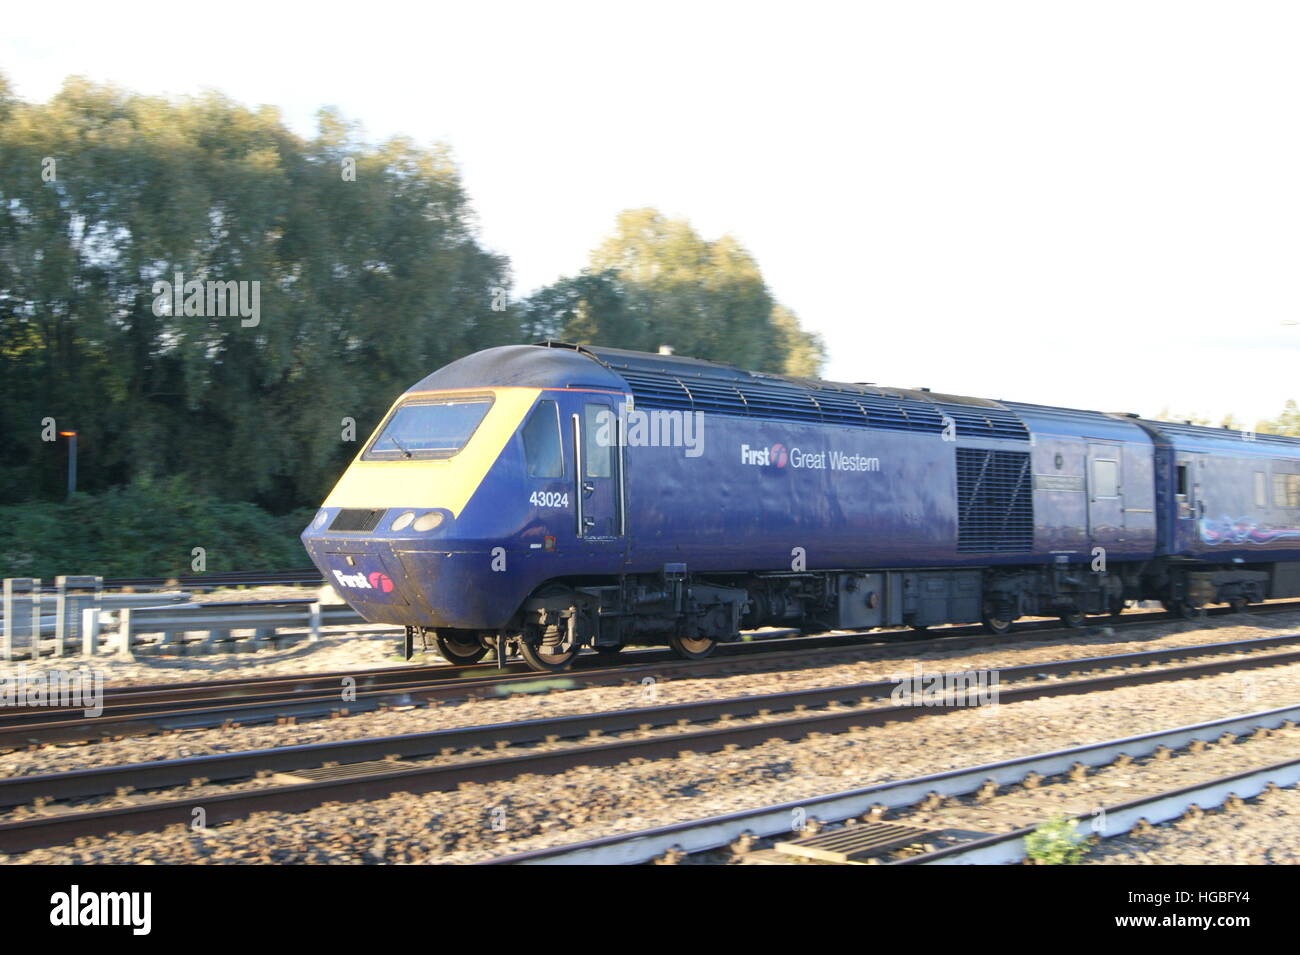 HST locomotive No.43024 departs Platform 3 of Swindon station in October 2016 branded in First Great Western livery. Stock Photo